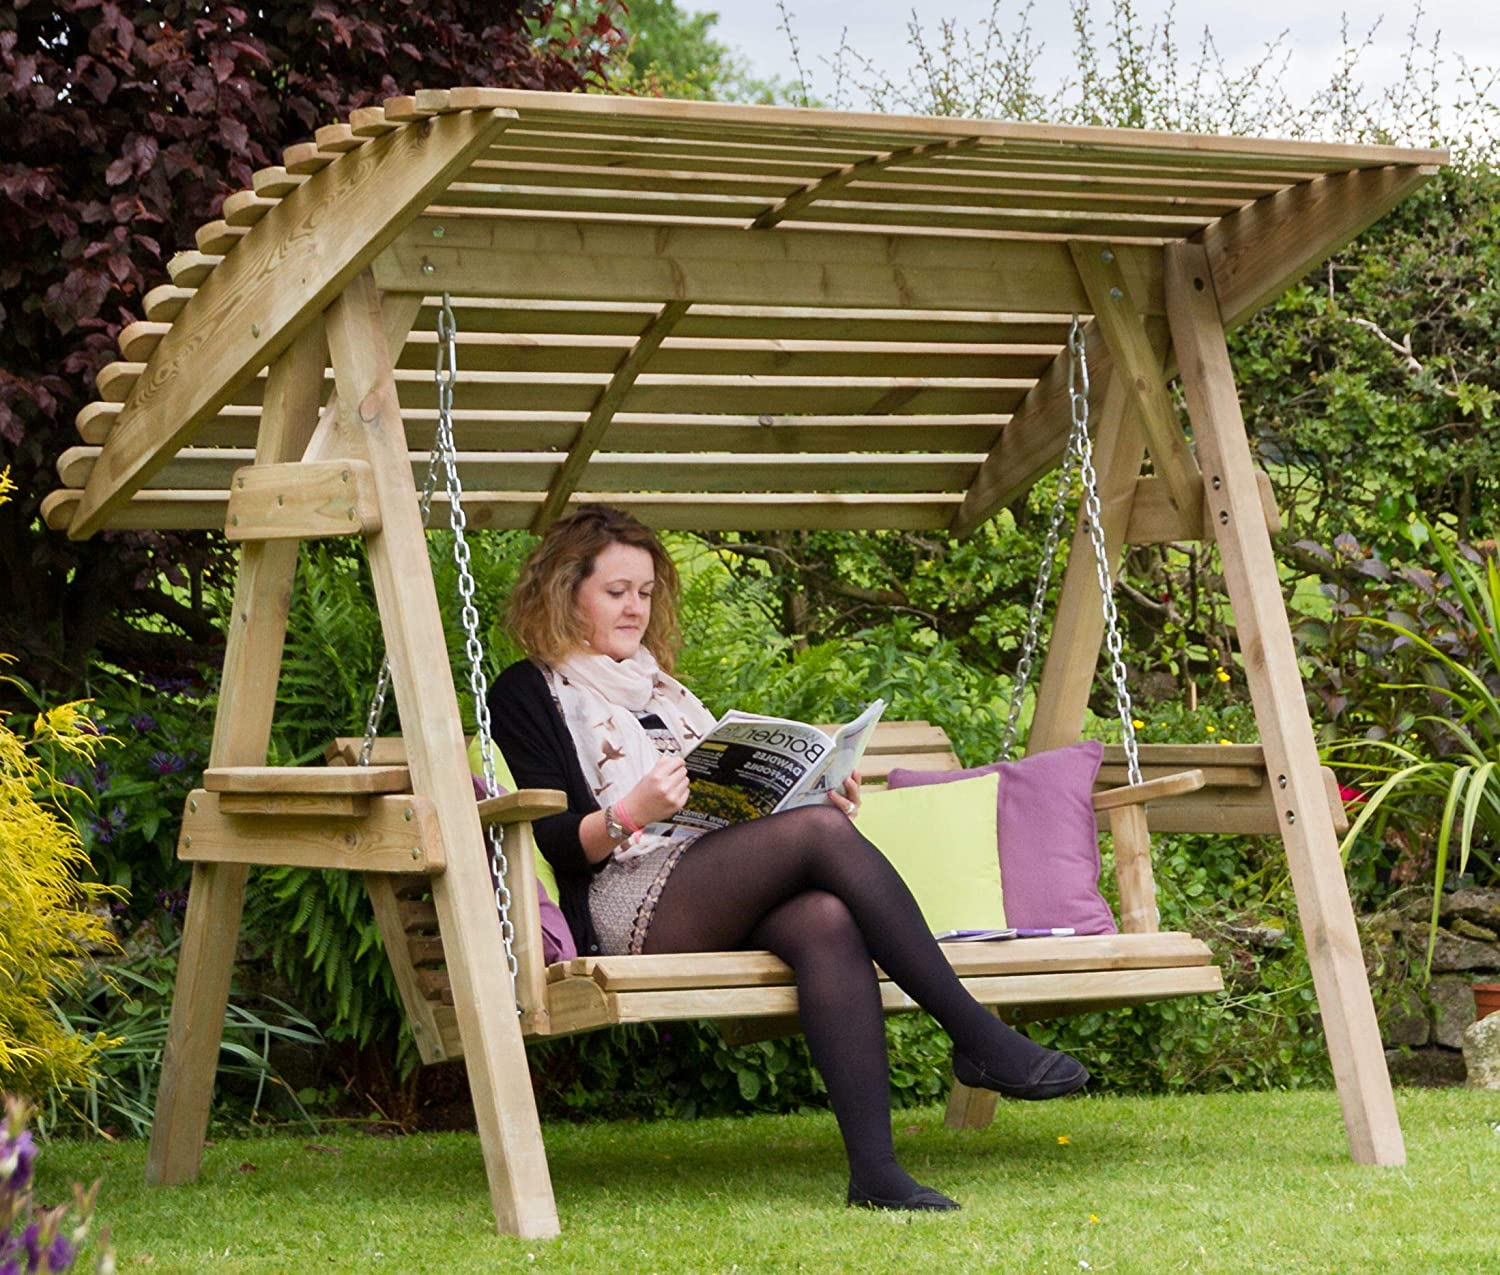 2 Seater Swing with Canopy Wooden Garden Swing 2 /& 3 Seat Chair Seat Hammock Bench Furniture Lounger